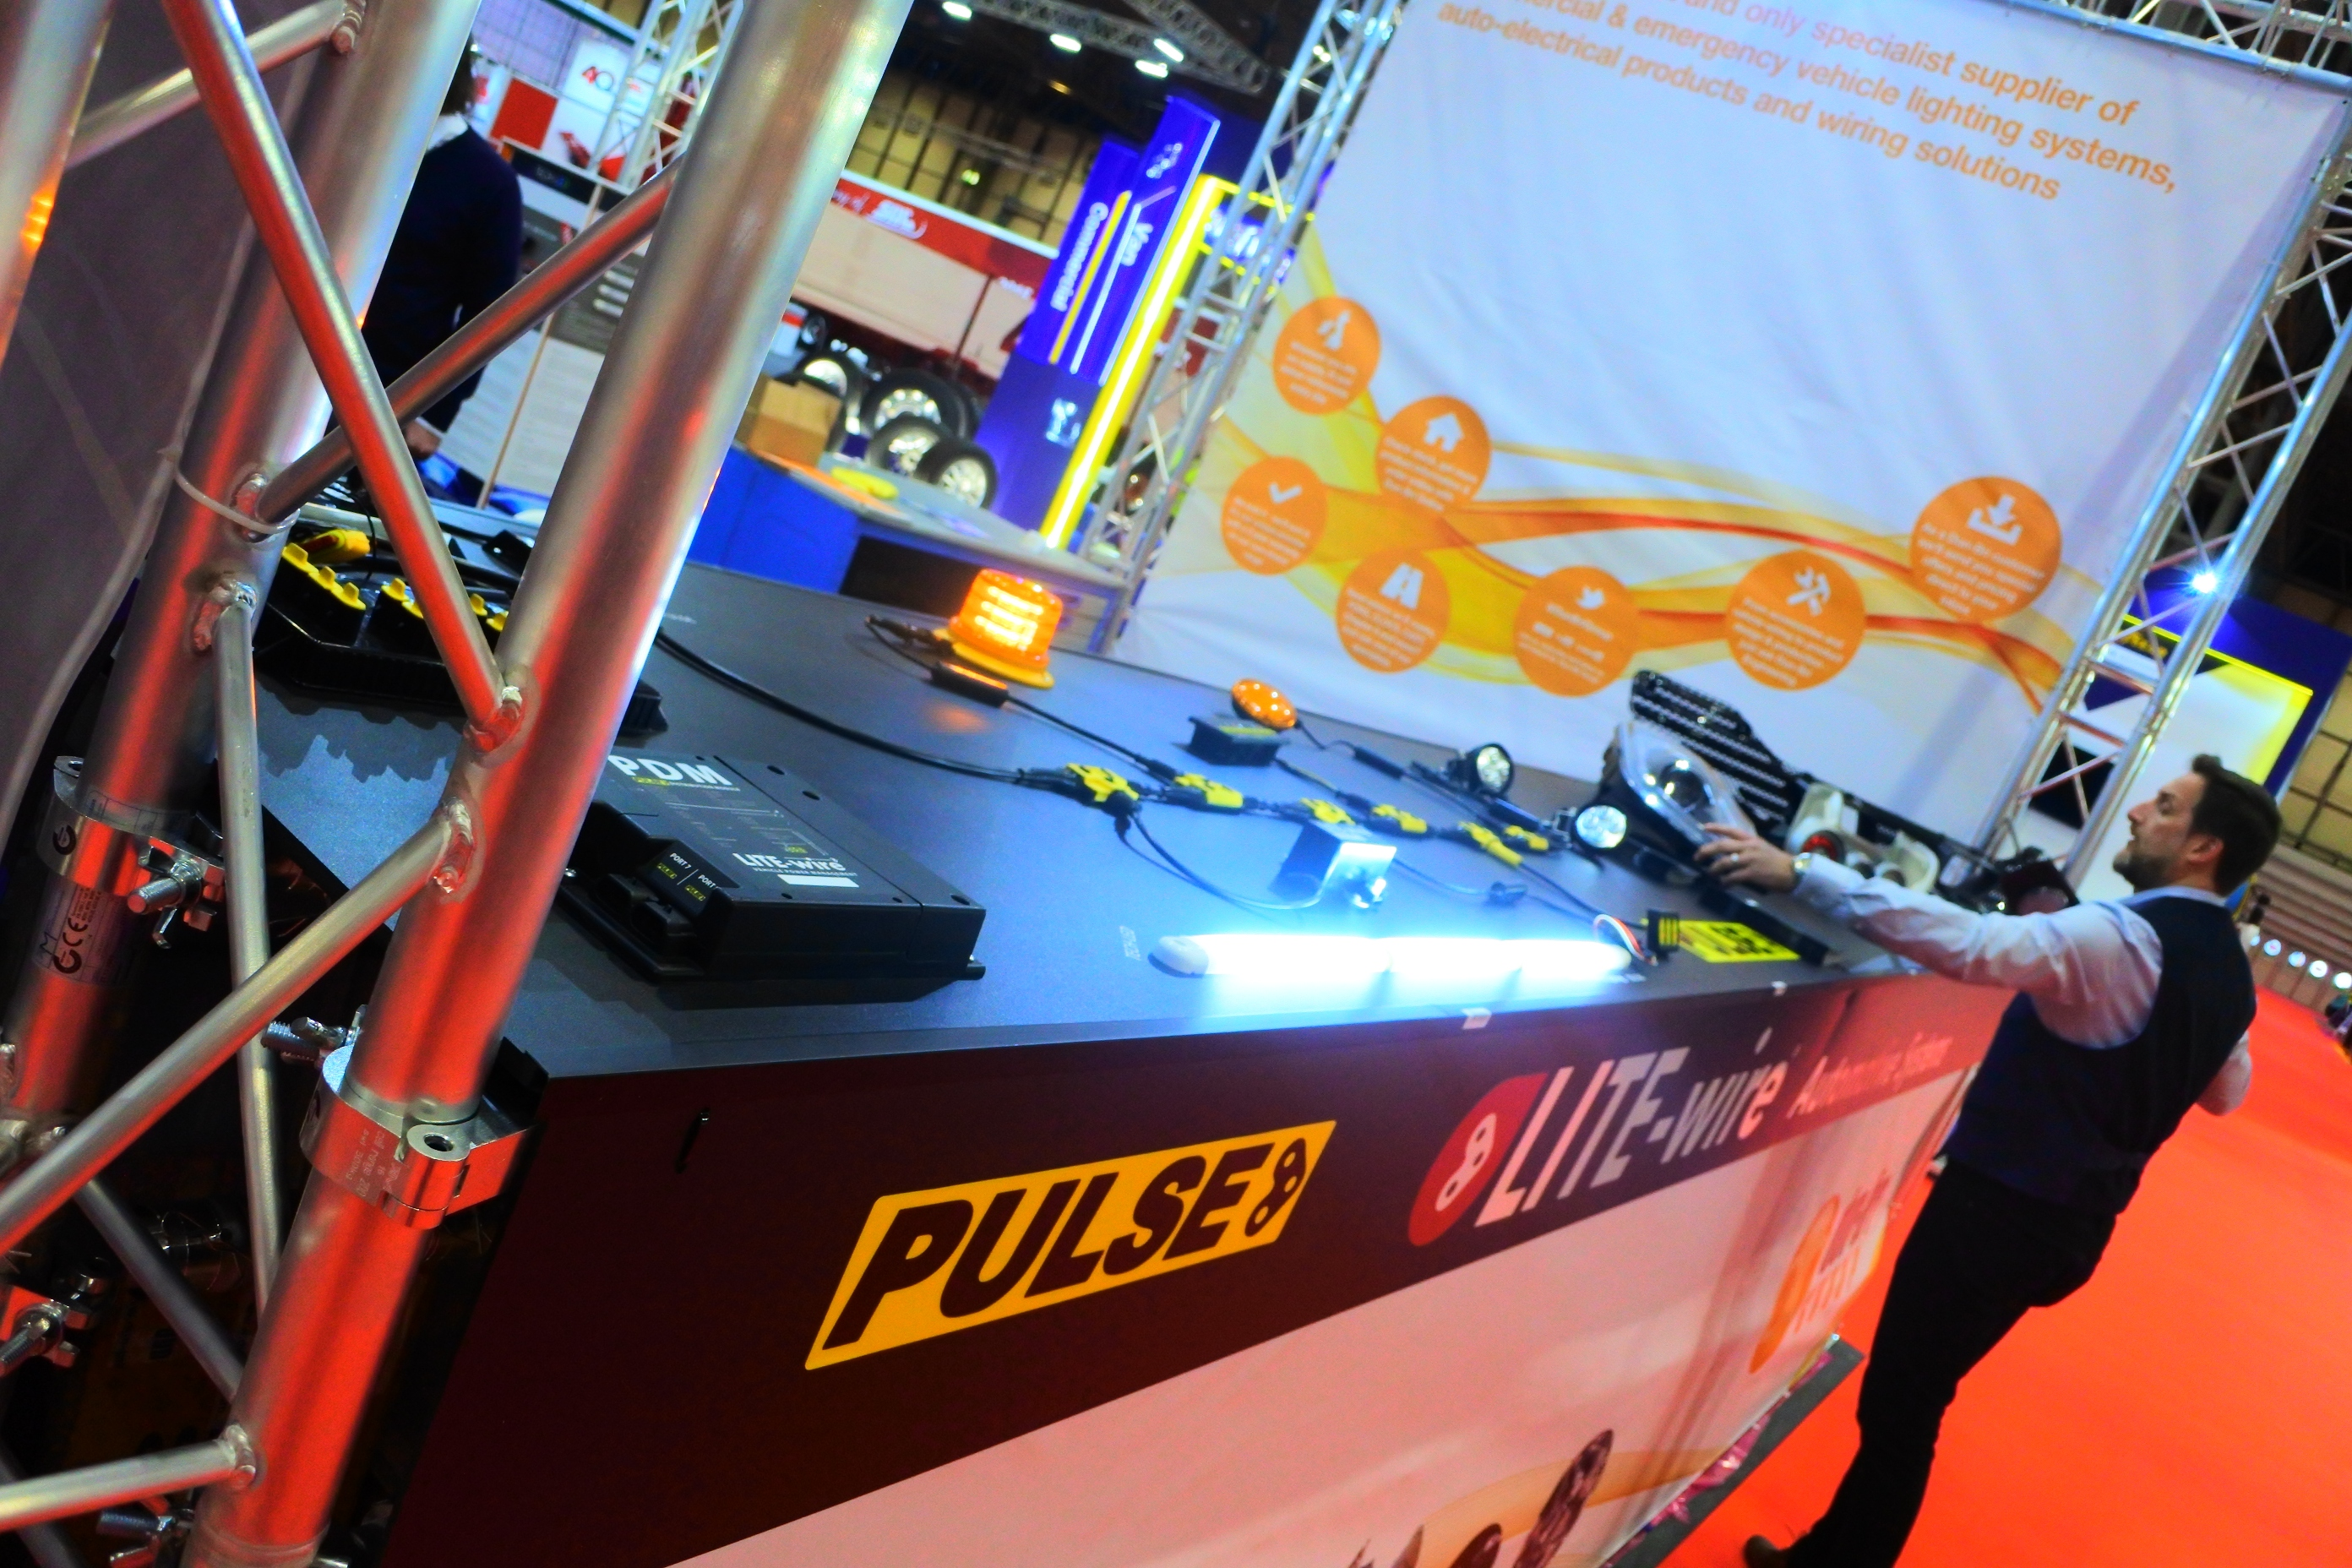 Dun Bri Group Celebrate Their Recent Success At The Cv Show 2018 Wiring Emergency Vehicle Lights